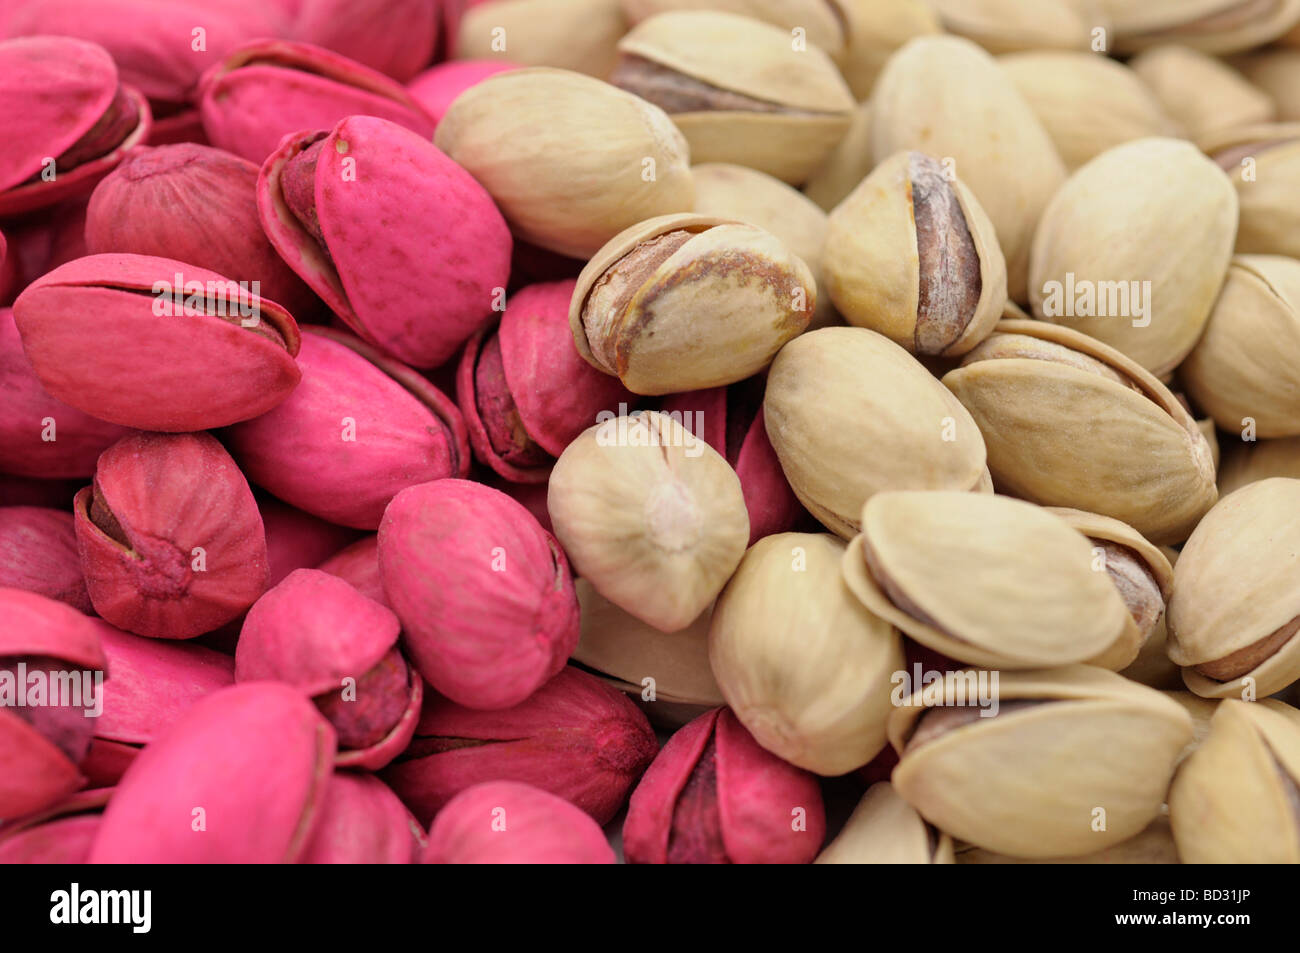 Pink Dyed and Natural color Pistachios - Stock Image